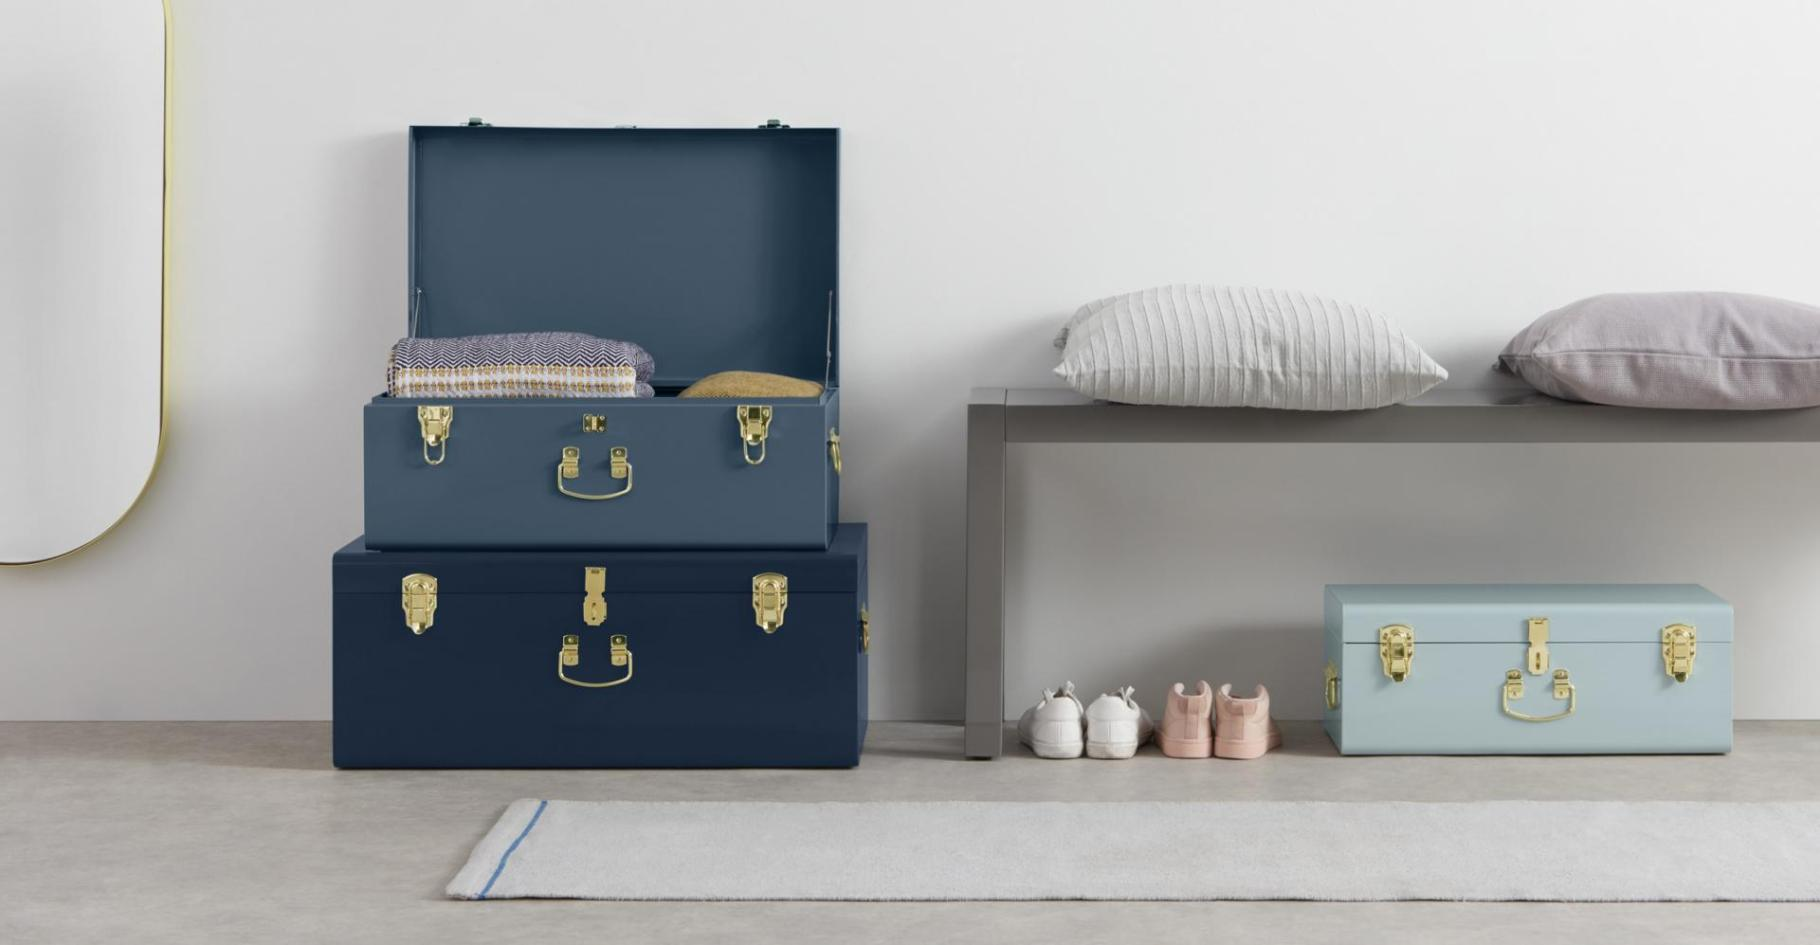 Tonal Blue Trunk Storage Living Room Decor Inspiration | Blue is a really versatile colour to decorate your home with. But, which colours and tones work well? What kind of accessories work with blue? This post gives you ideas for pulling together an elegant, calming blue colour palette and pieces for your home. Read more: kittyandb.com #Blue #colourfulhomedecor #interiordecoratinginspiration #storage